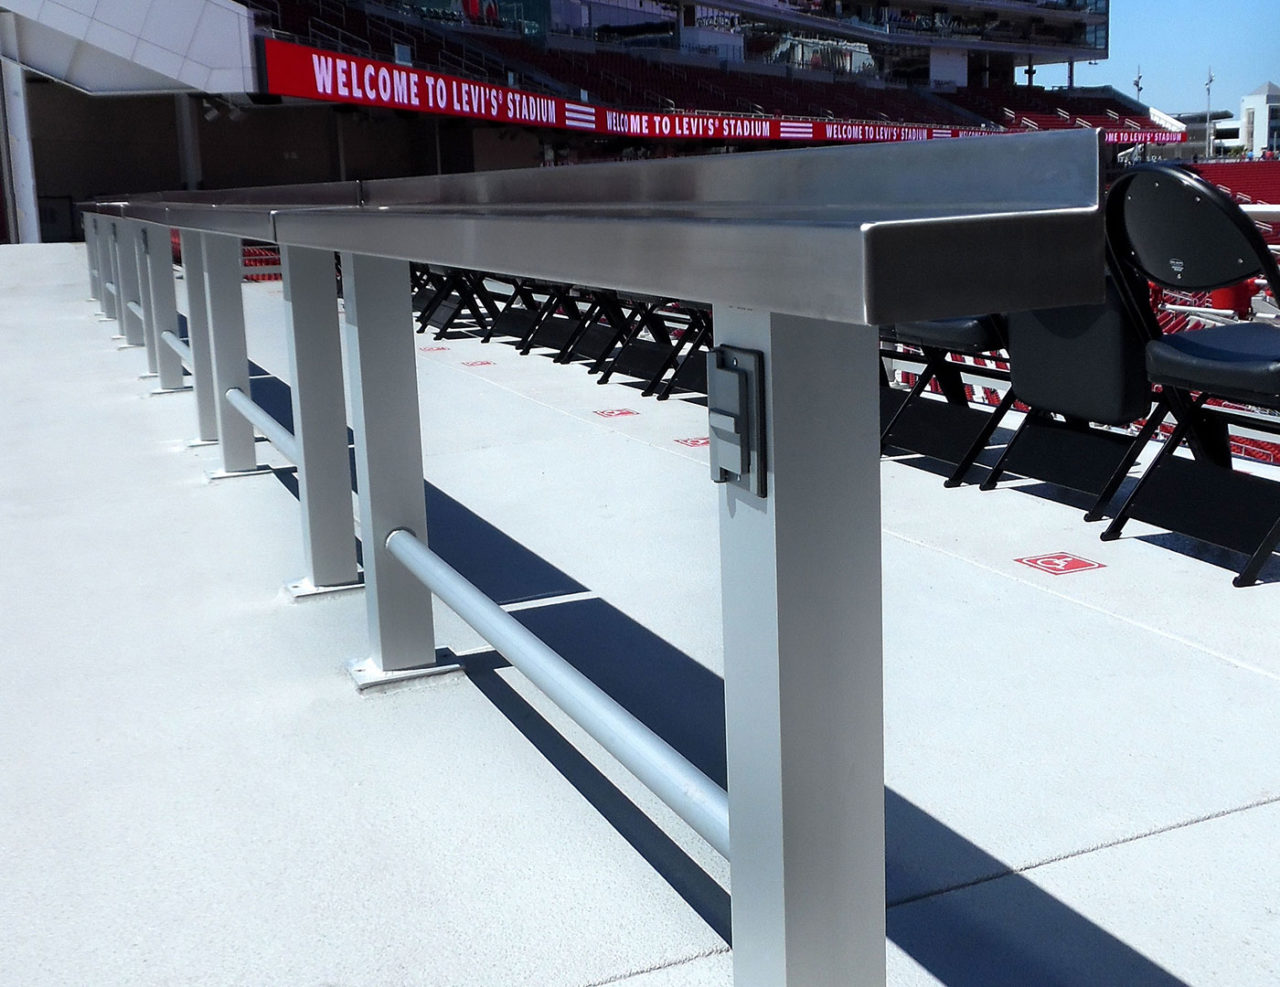 Custom USB-connected stainless steel drinkrails at upper and lower concourses of Levi's Stadium